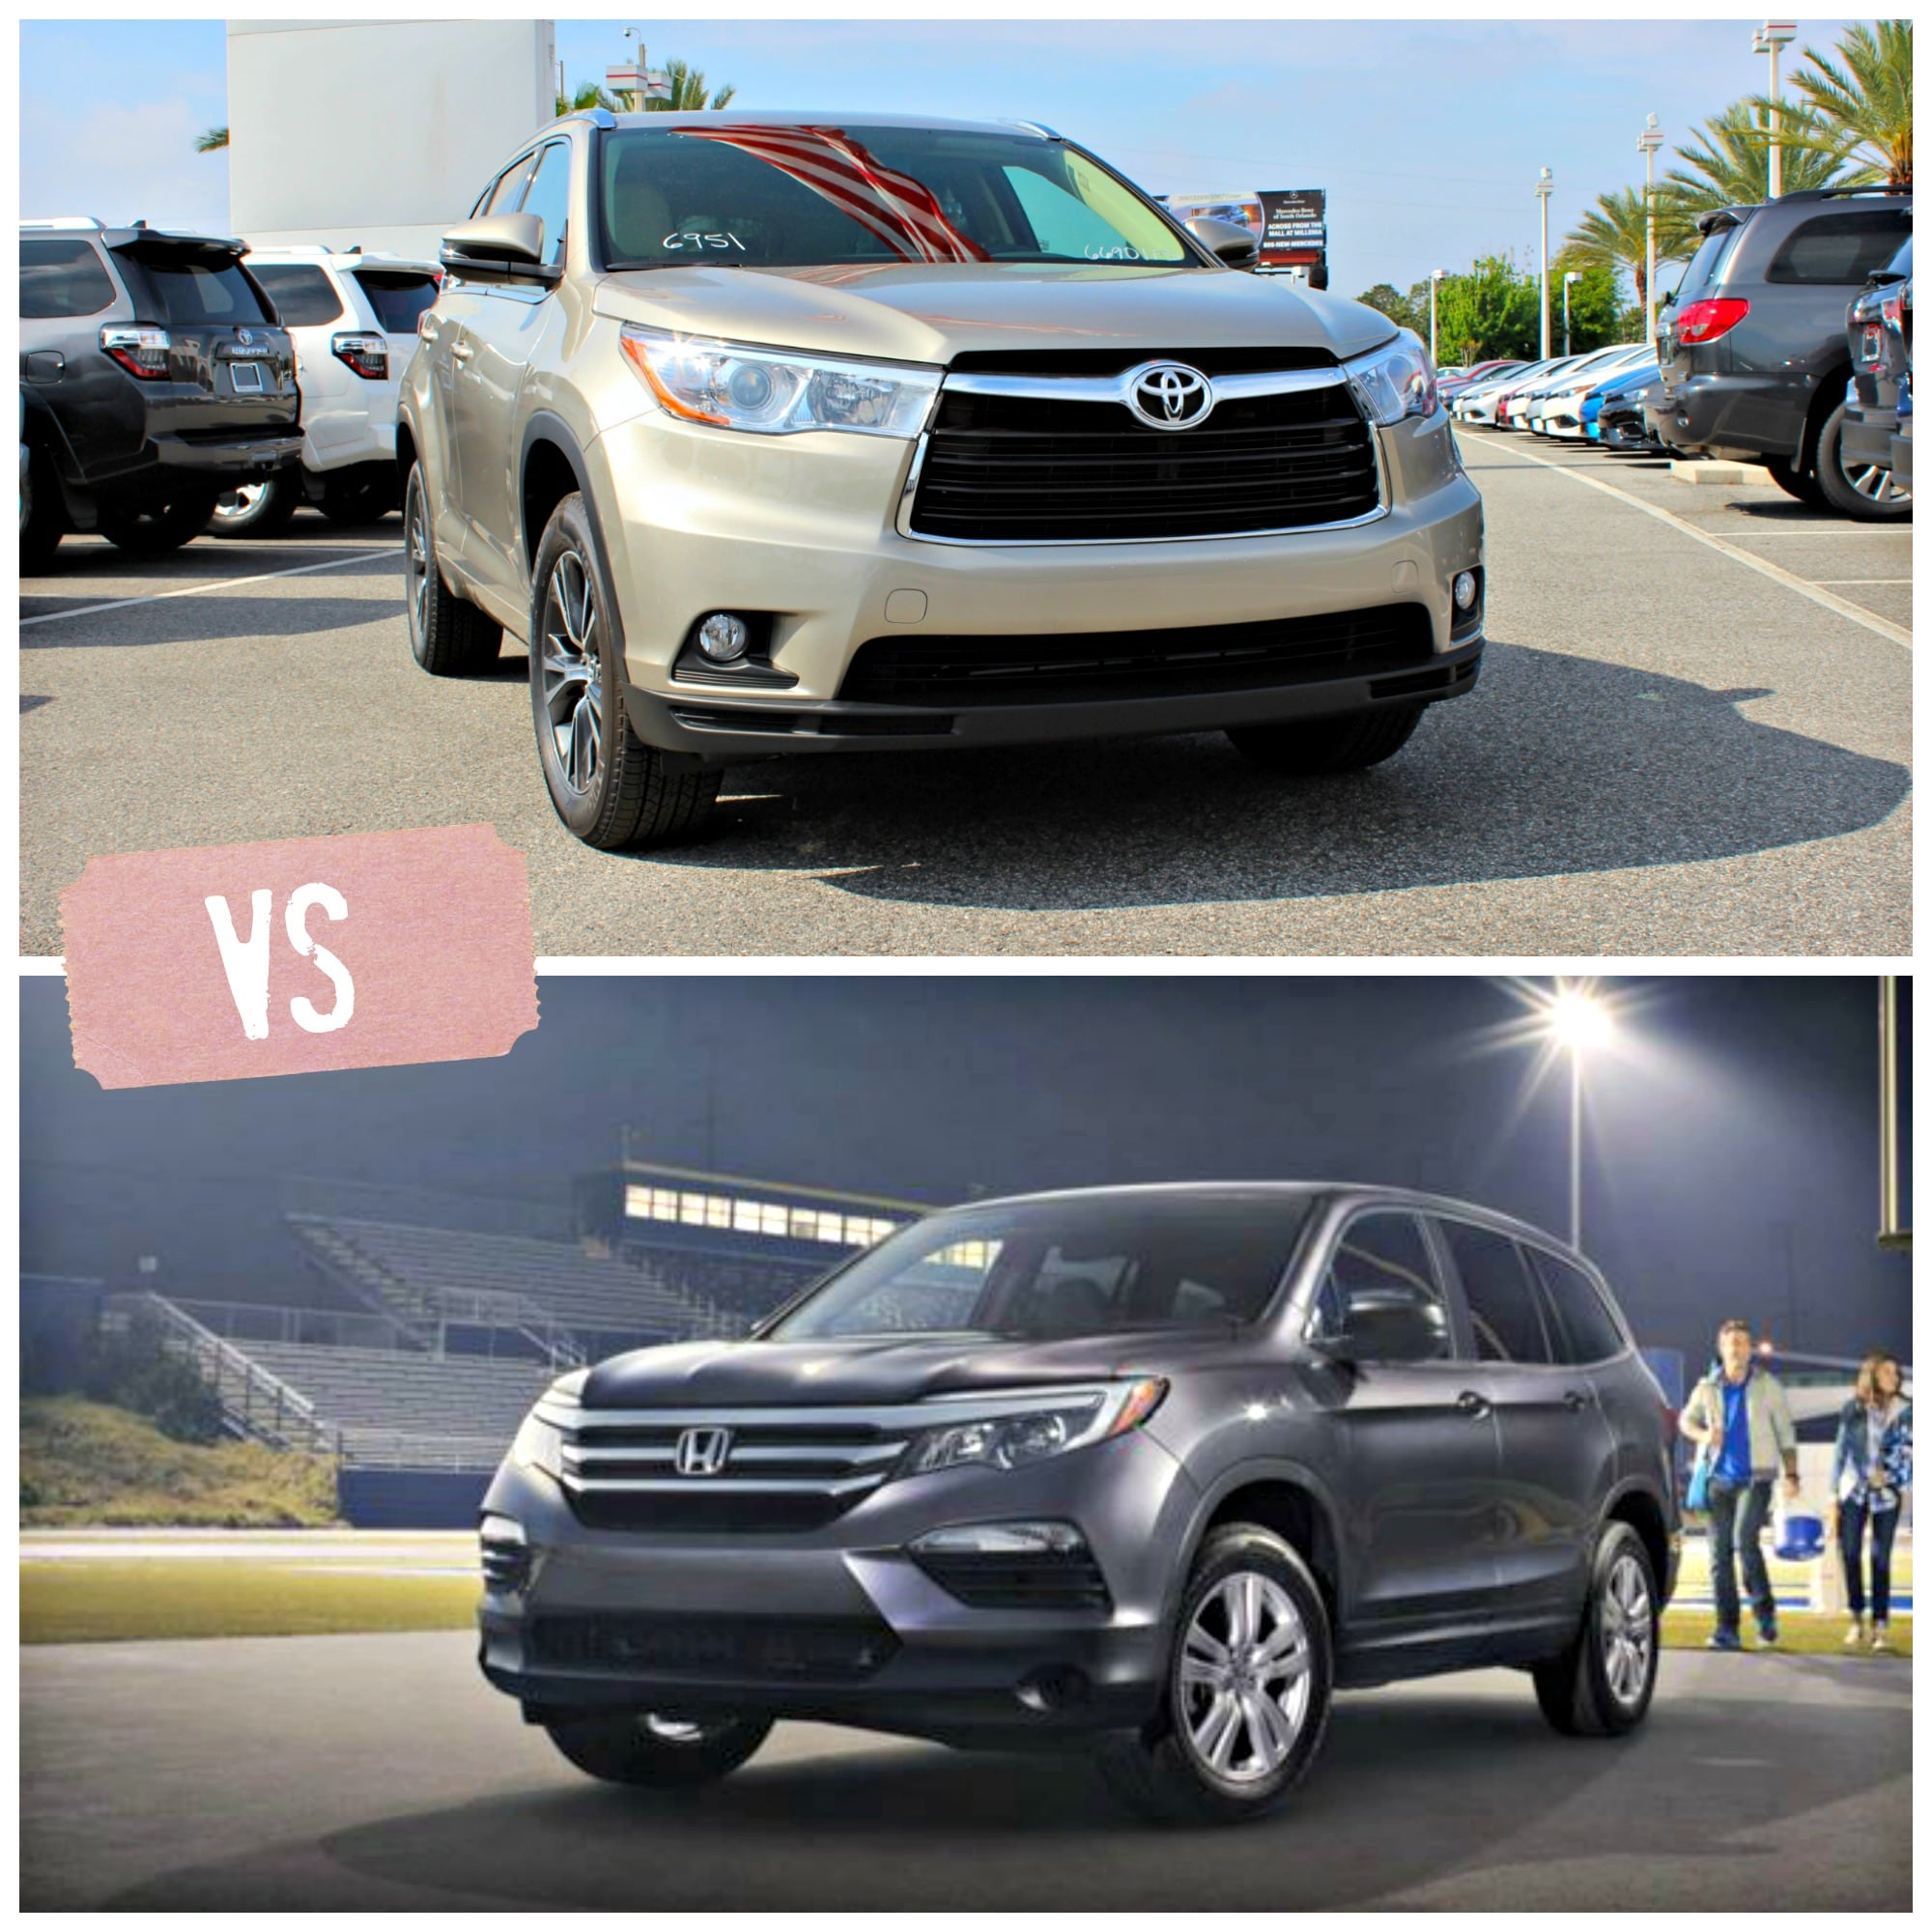 Ford Dealers In Orlando: 2016 Toyota Highlander Vs Honda Pilot